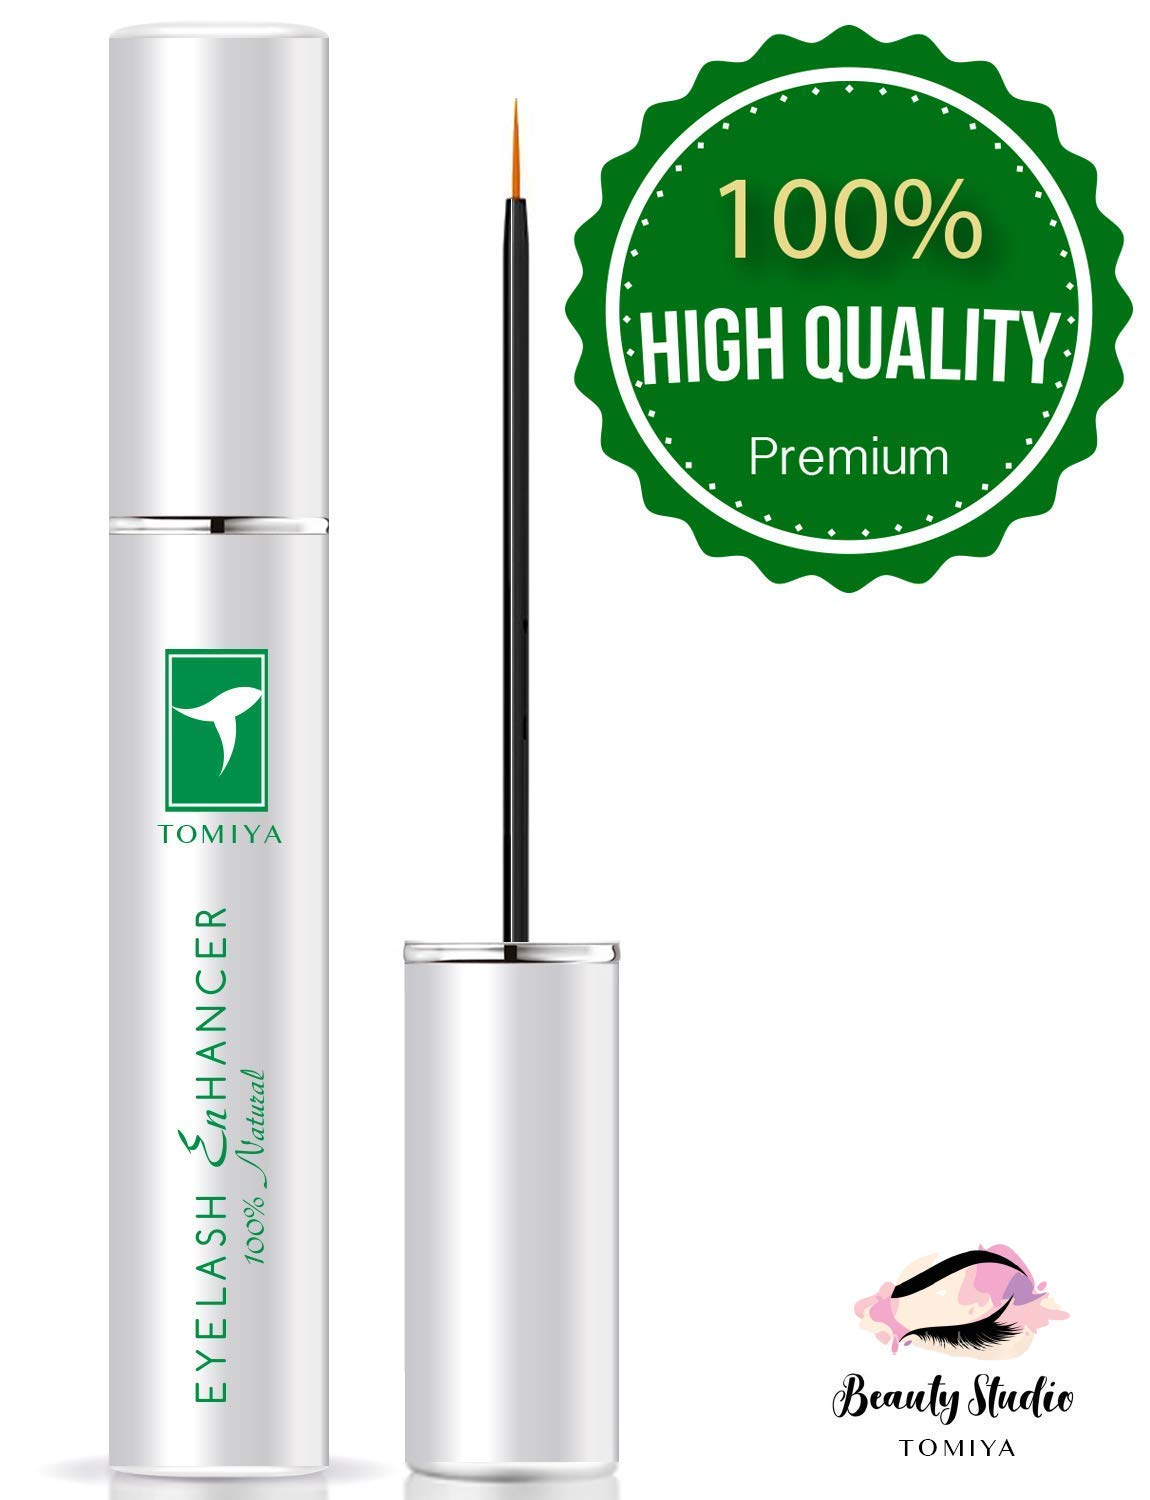 VOTALA Eyelash Growth Enhancer and Brow Serum for Long, Natural Extract Eyelash Growth Serum FEG Eyelash Enhancer for Longer, Thicker and Fuller Eyelash (EG) 3ML (6.2)